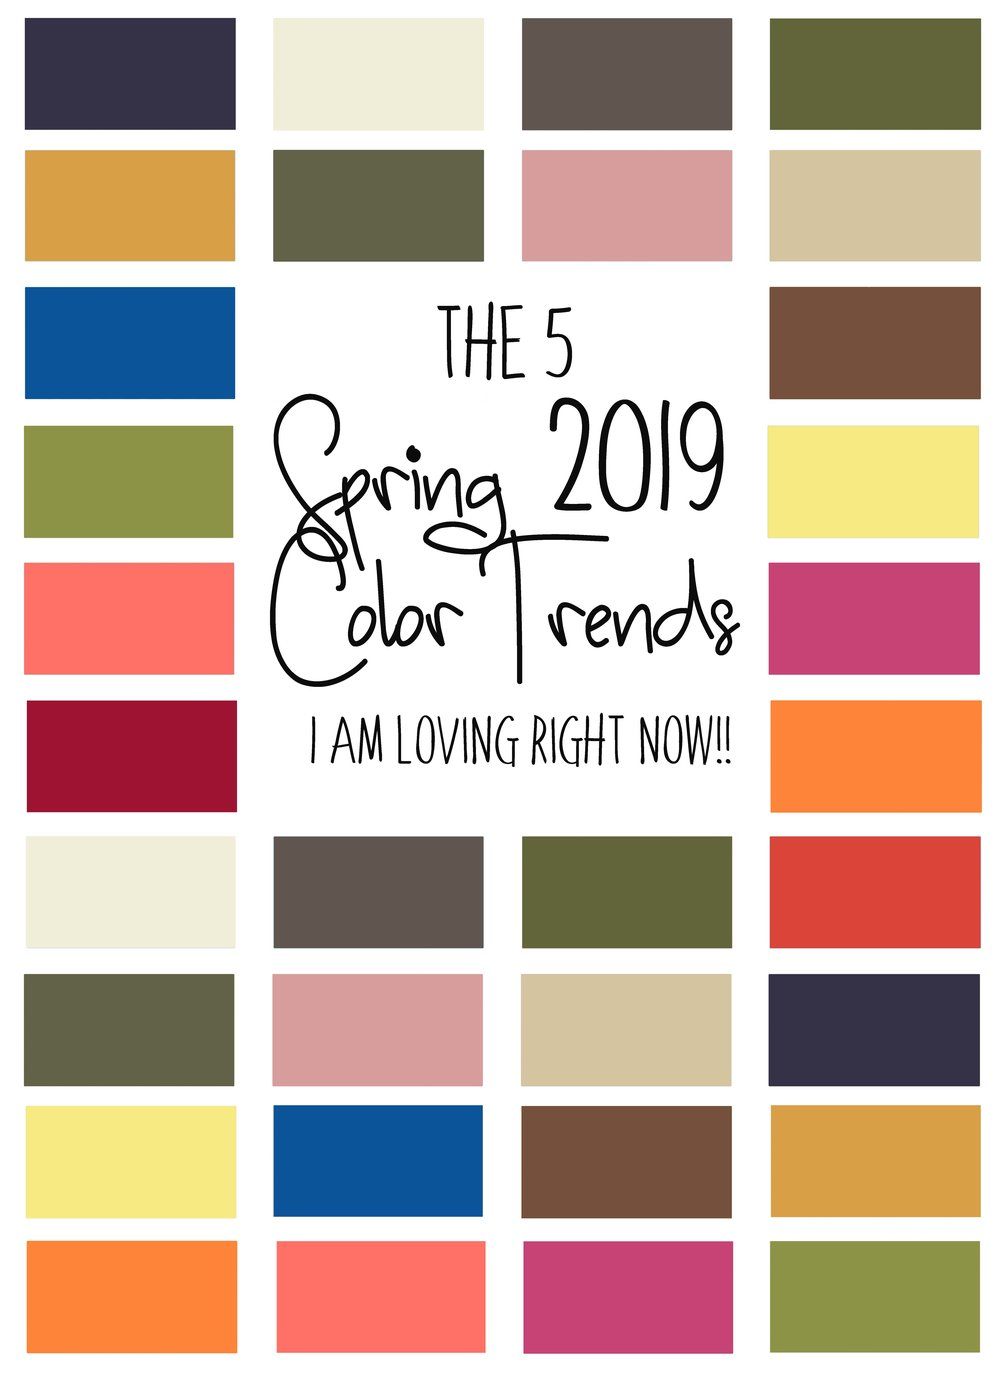 The 5 Spring colors I am loving right now.jpg